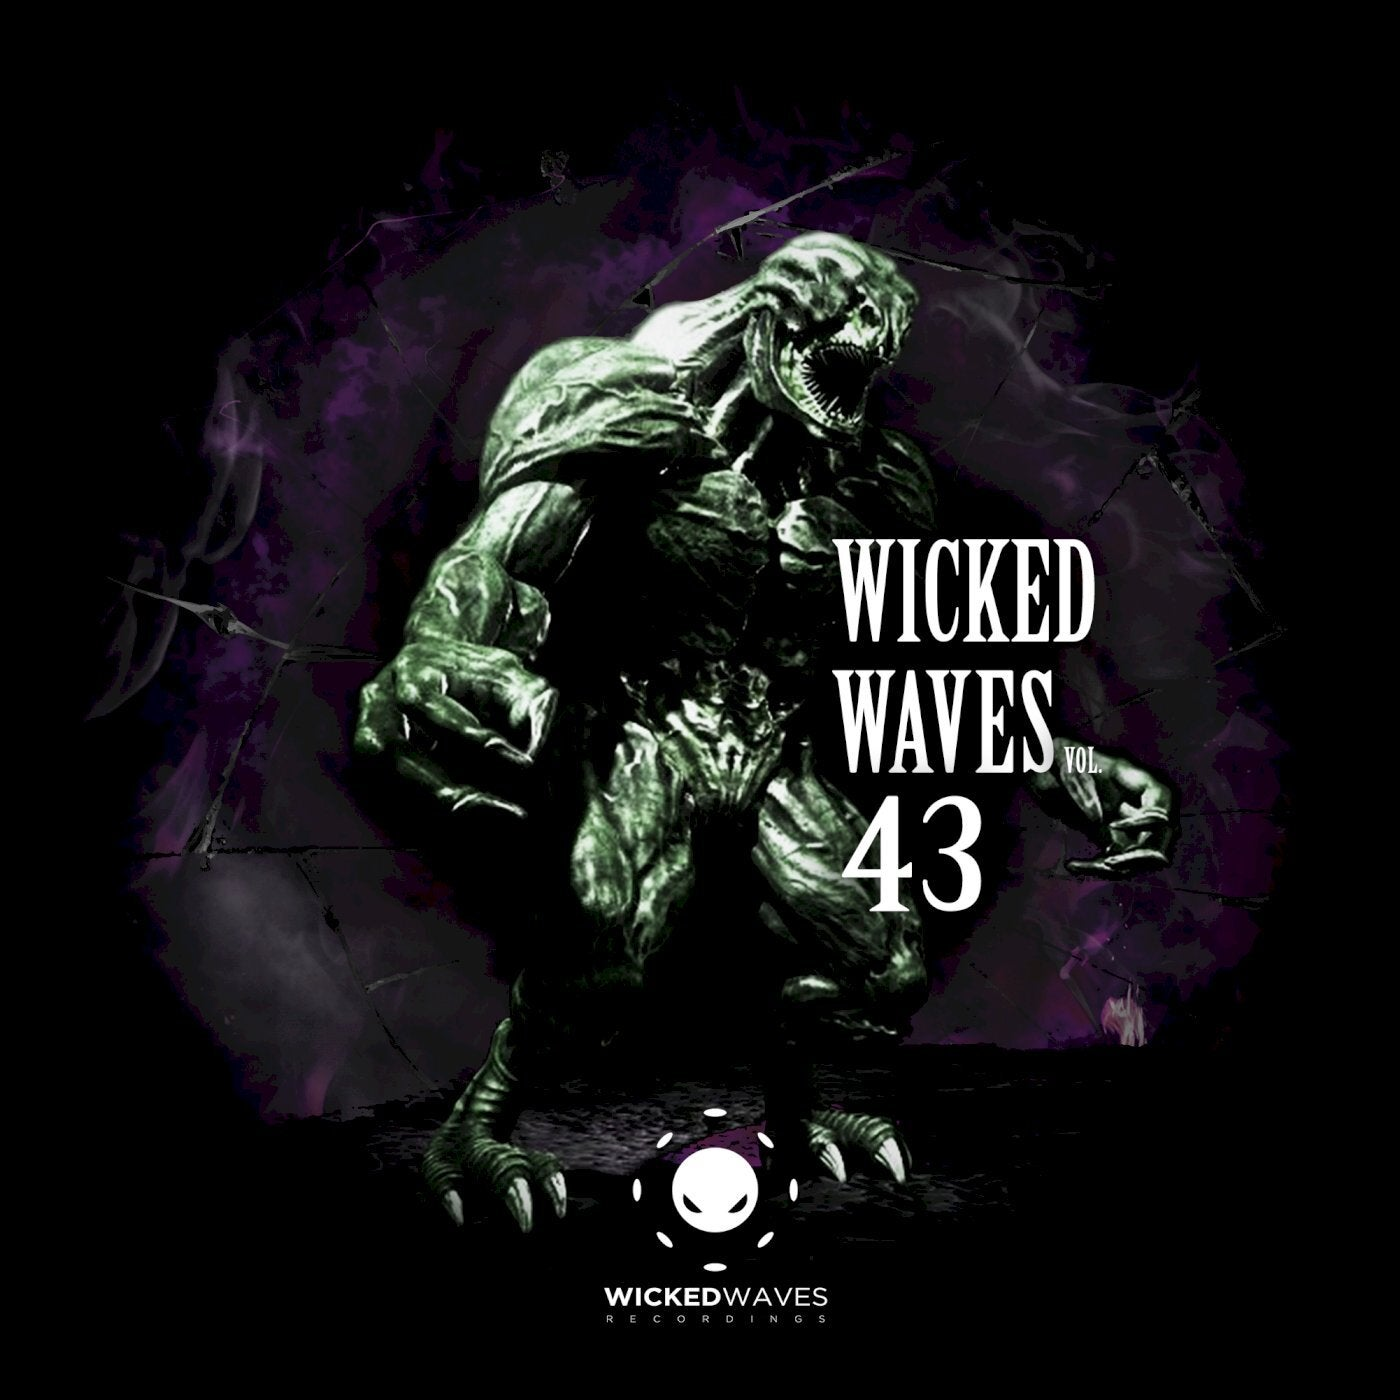 Wicked Waves Vol. 43